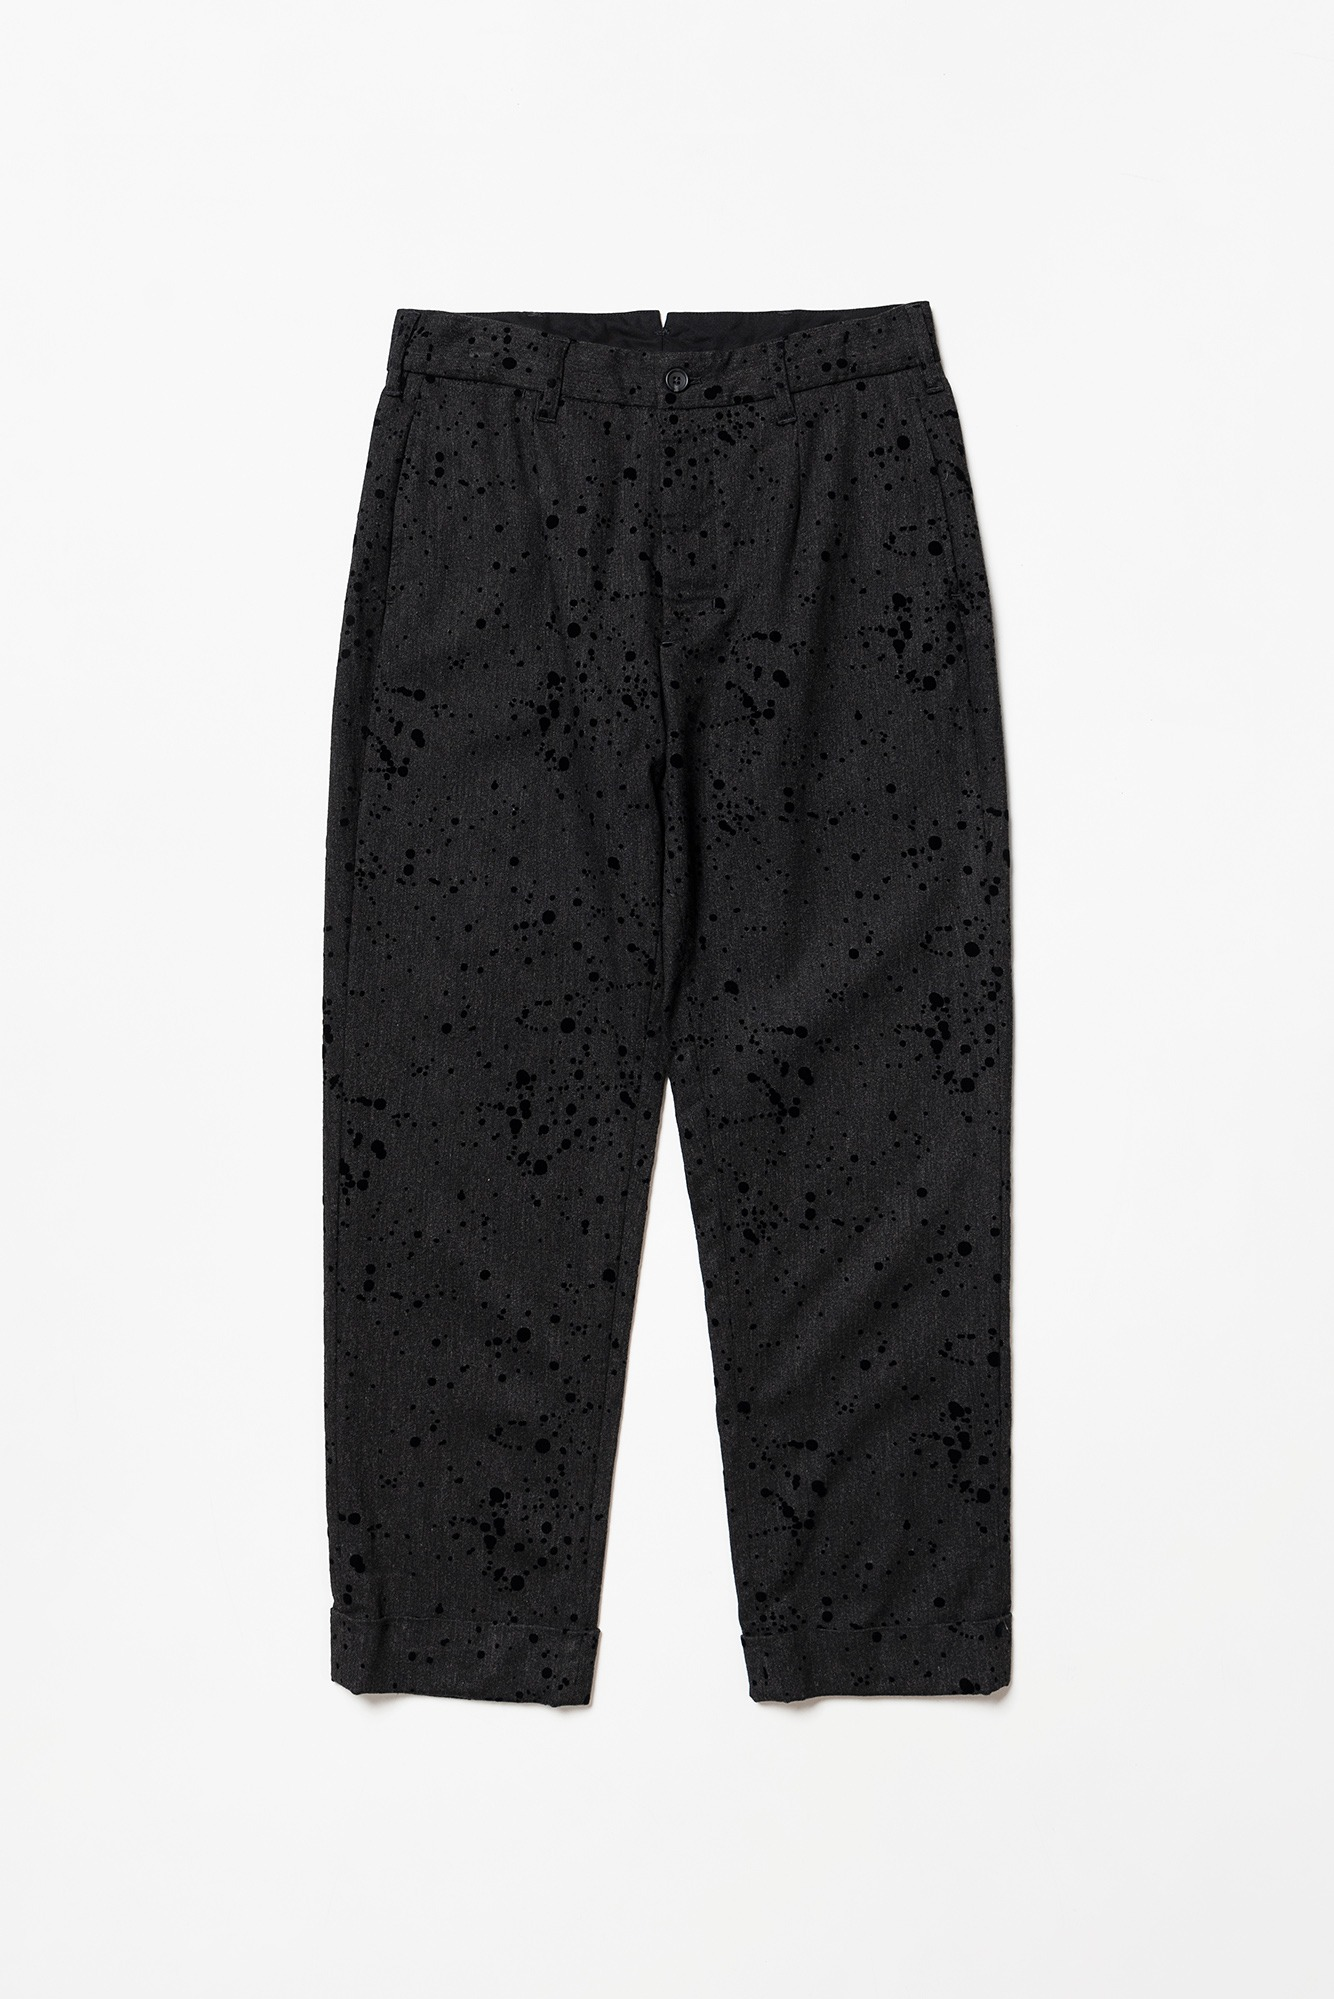 "ENGINEERED GARMENTS Andover Pant ""Charcoal Rayon Wool Flocking Splatter Print"""